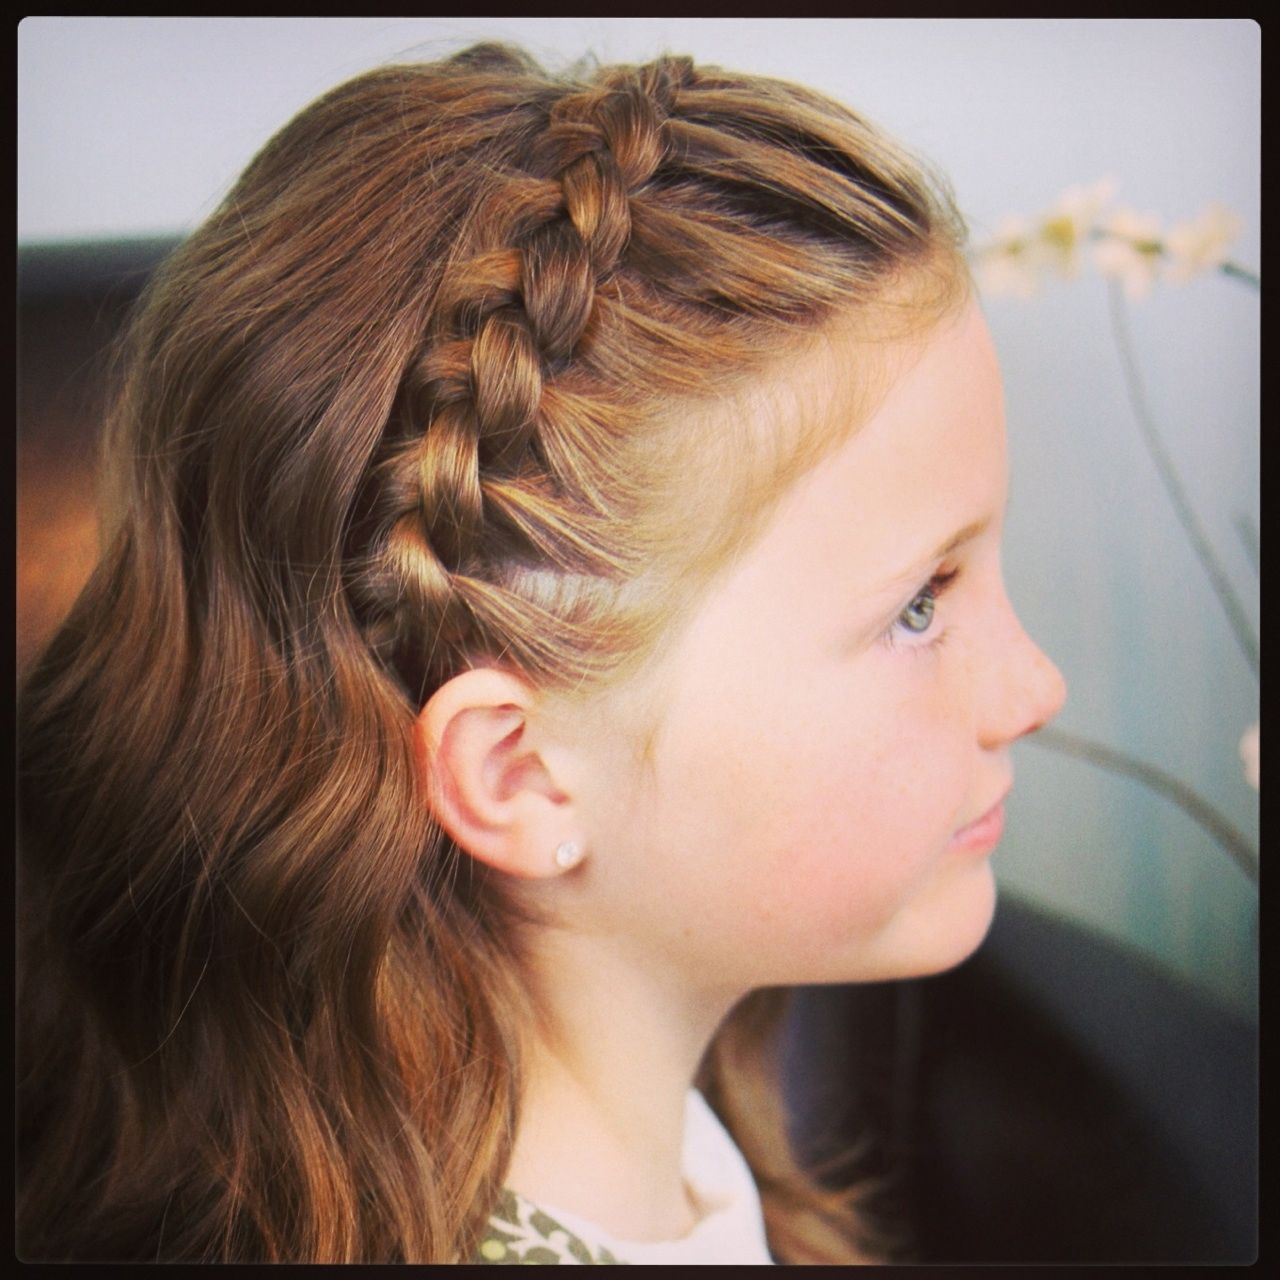 Lace braid headband cute girls hairstyles all things cailin